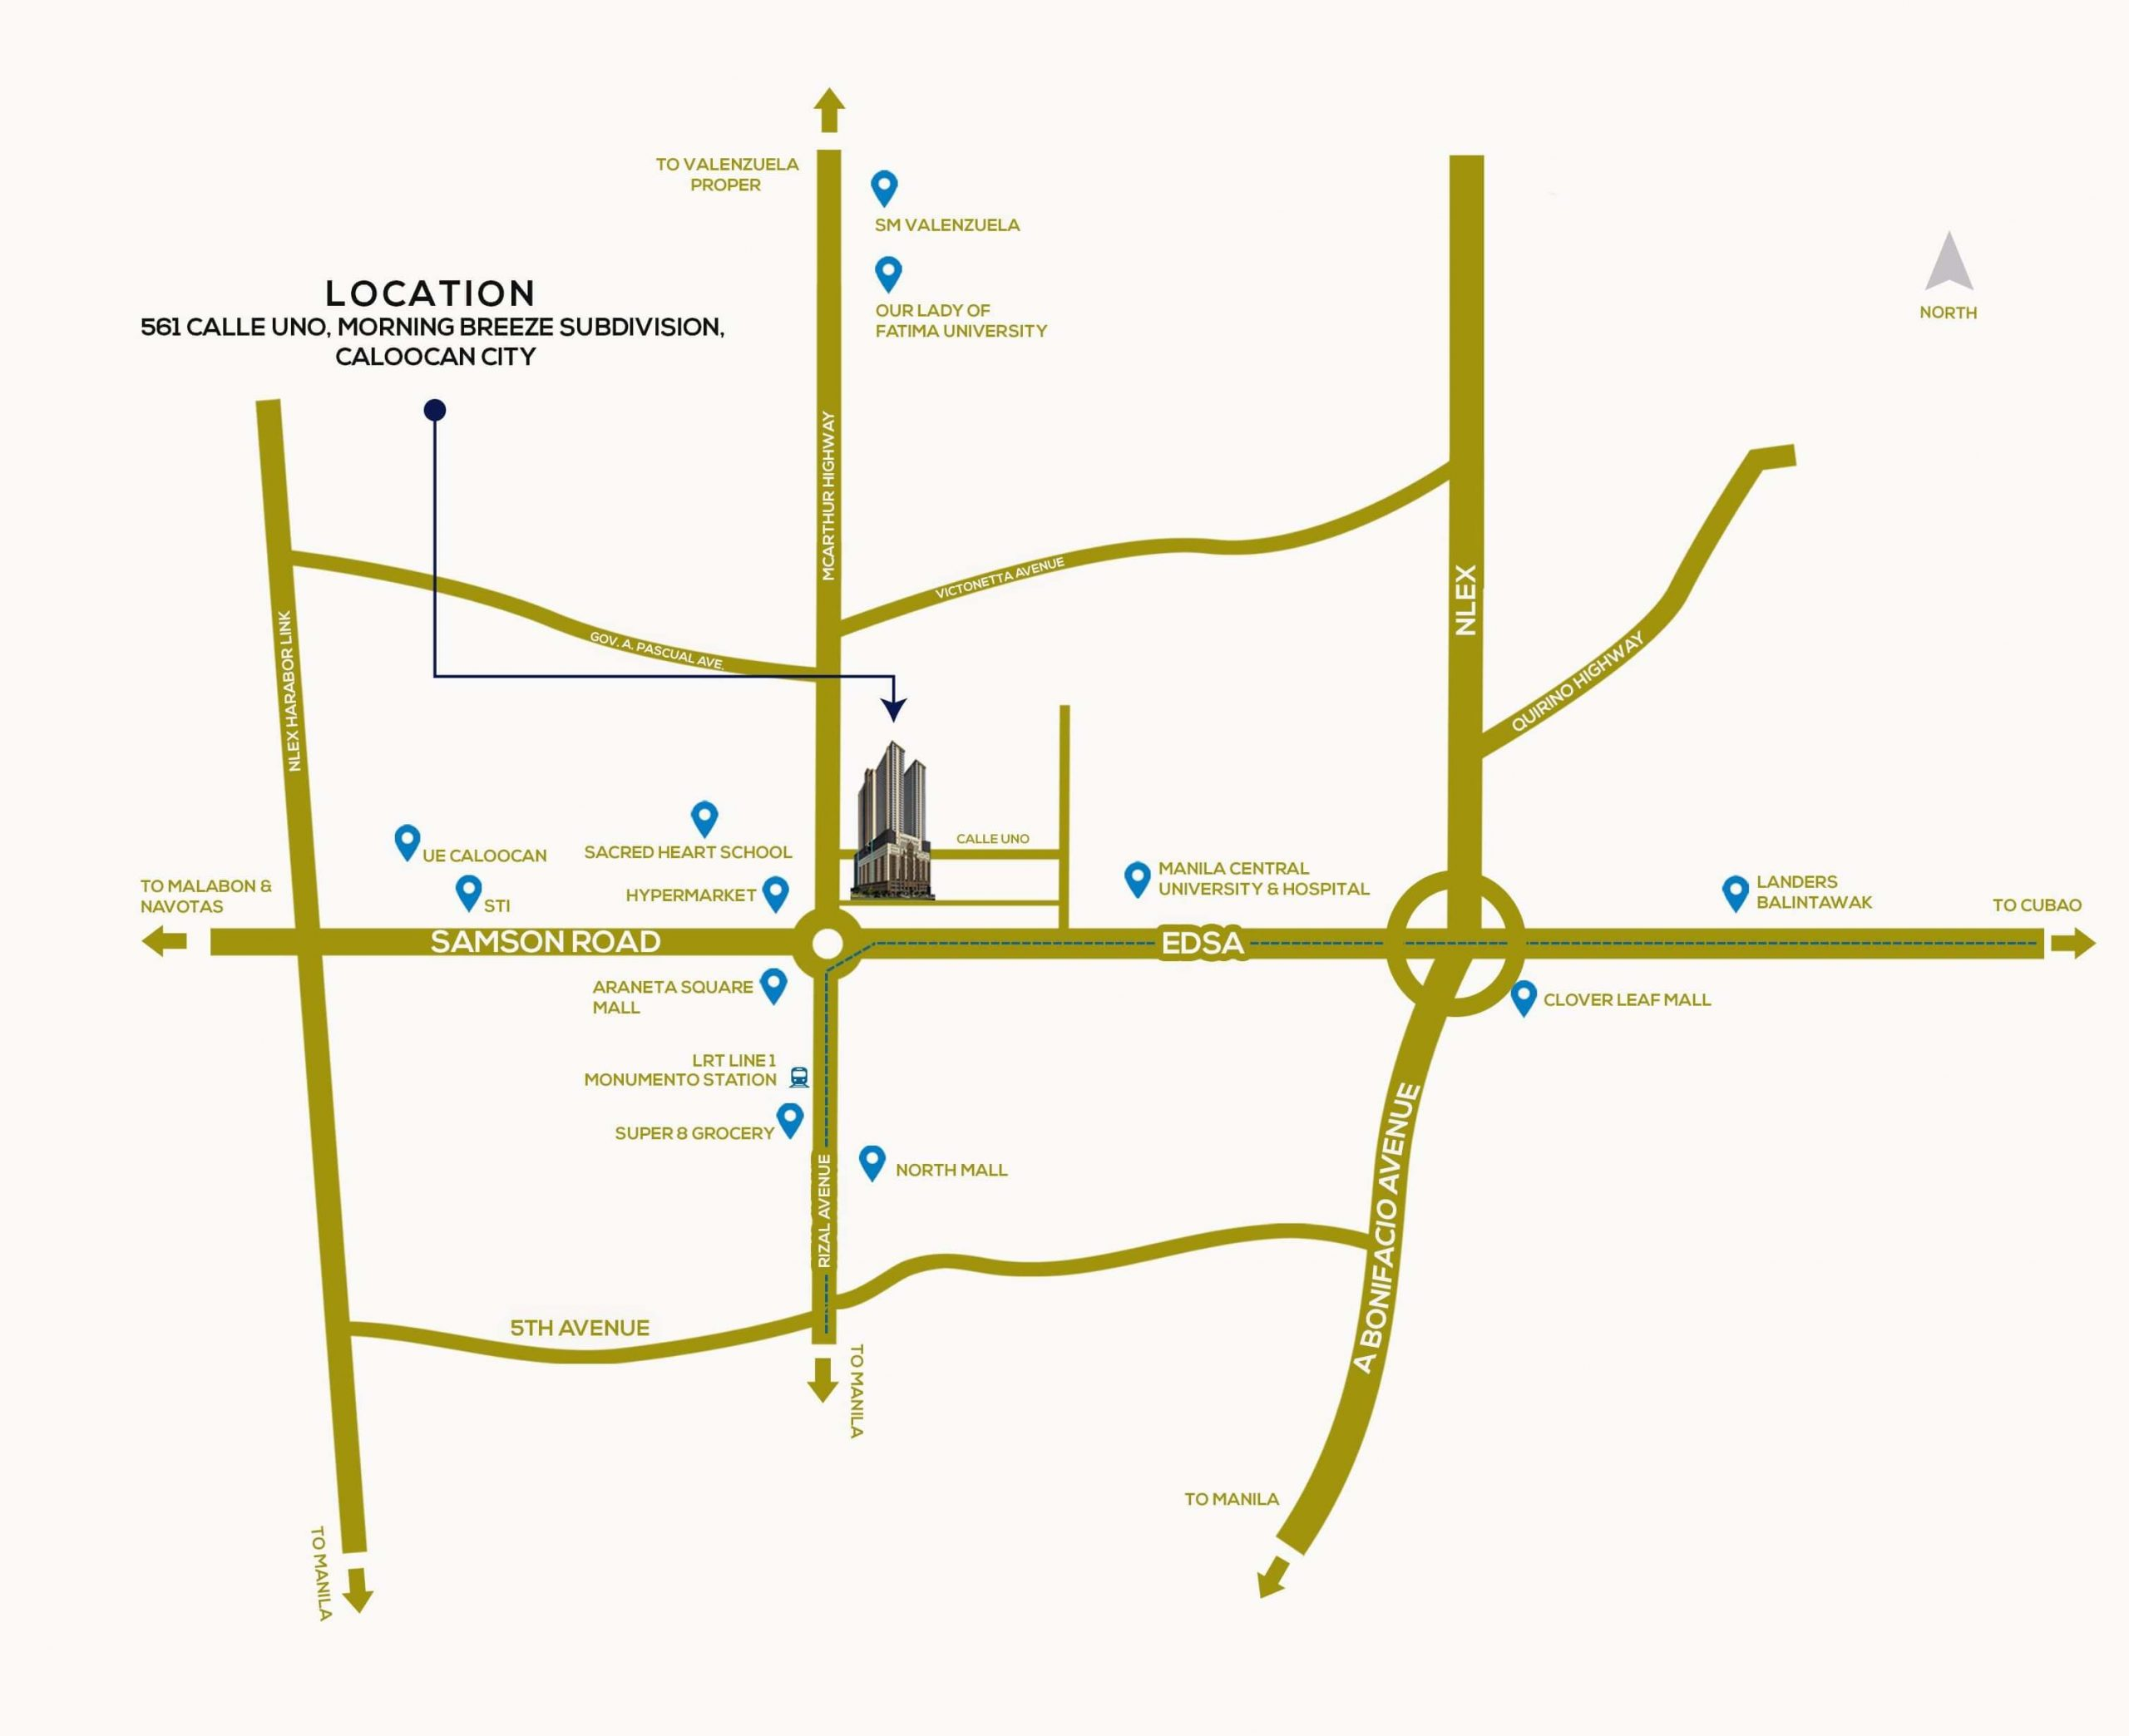 Victoria Sports Tower Monumento Location Map